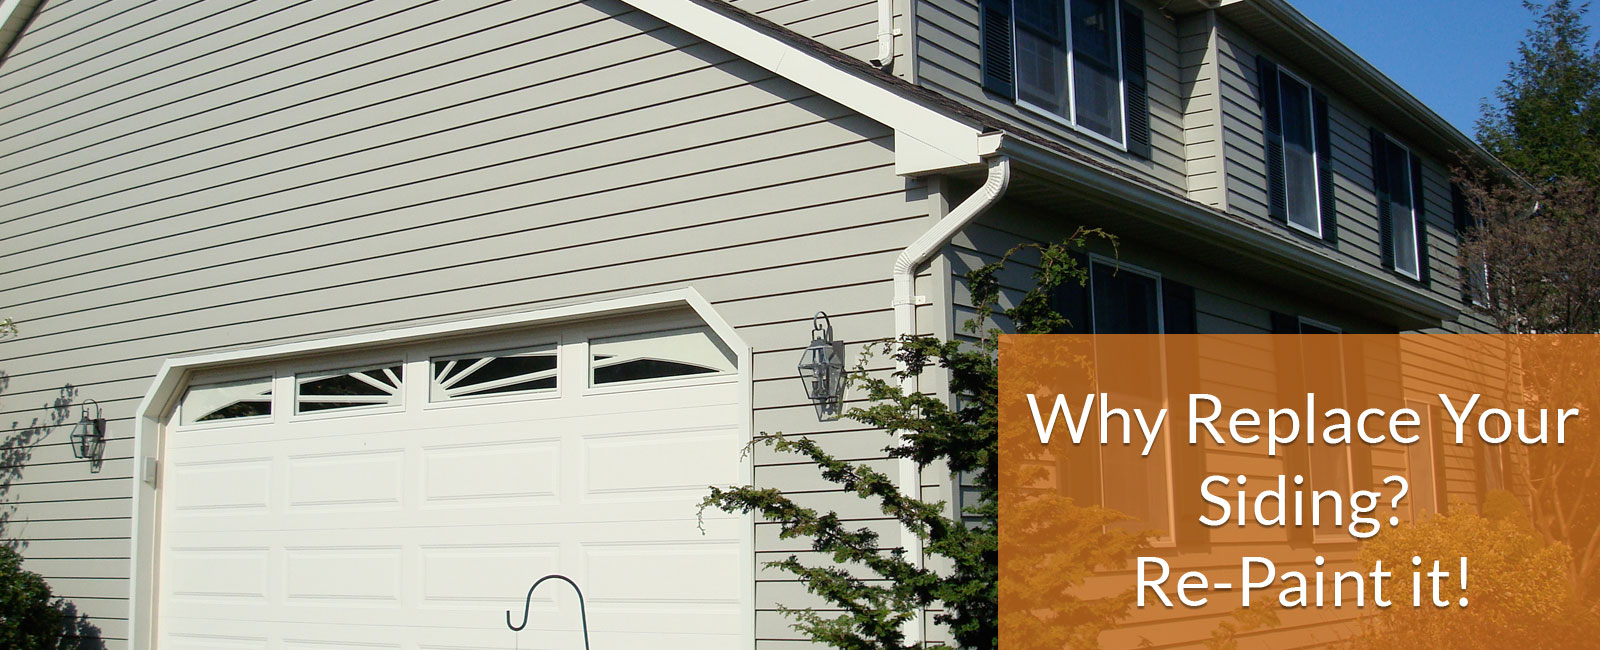 why replace your siding when you can repaint it